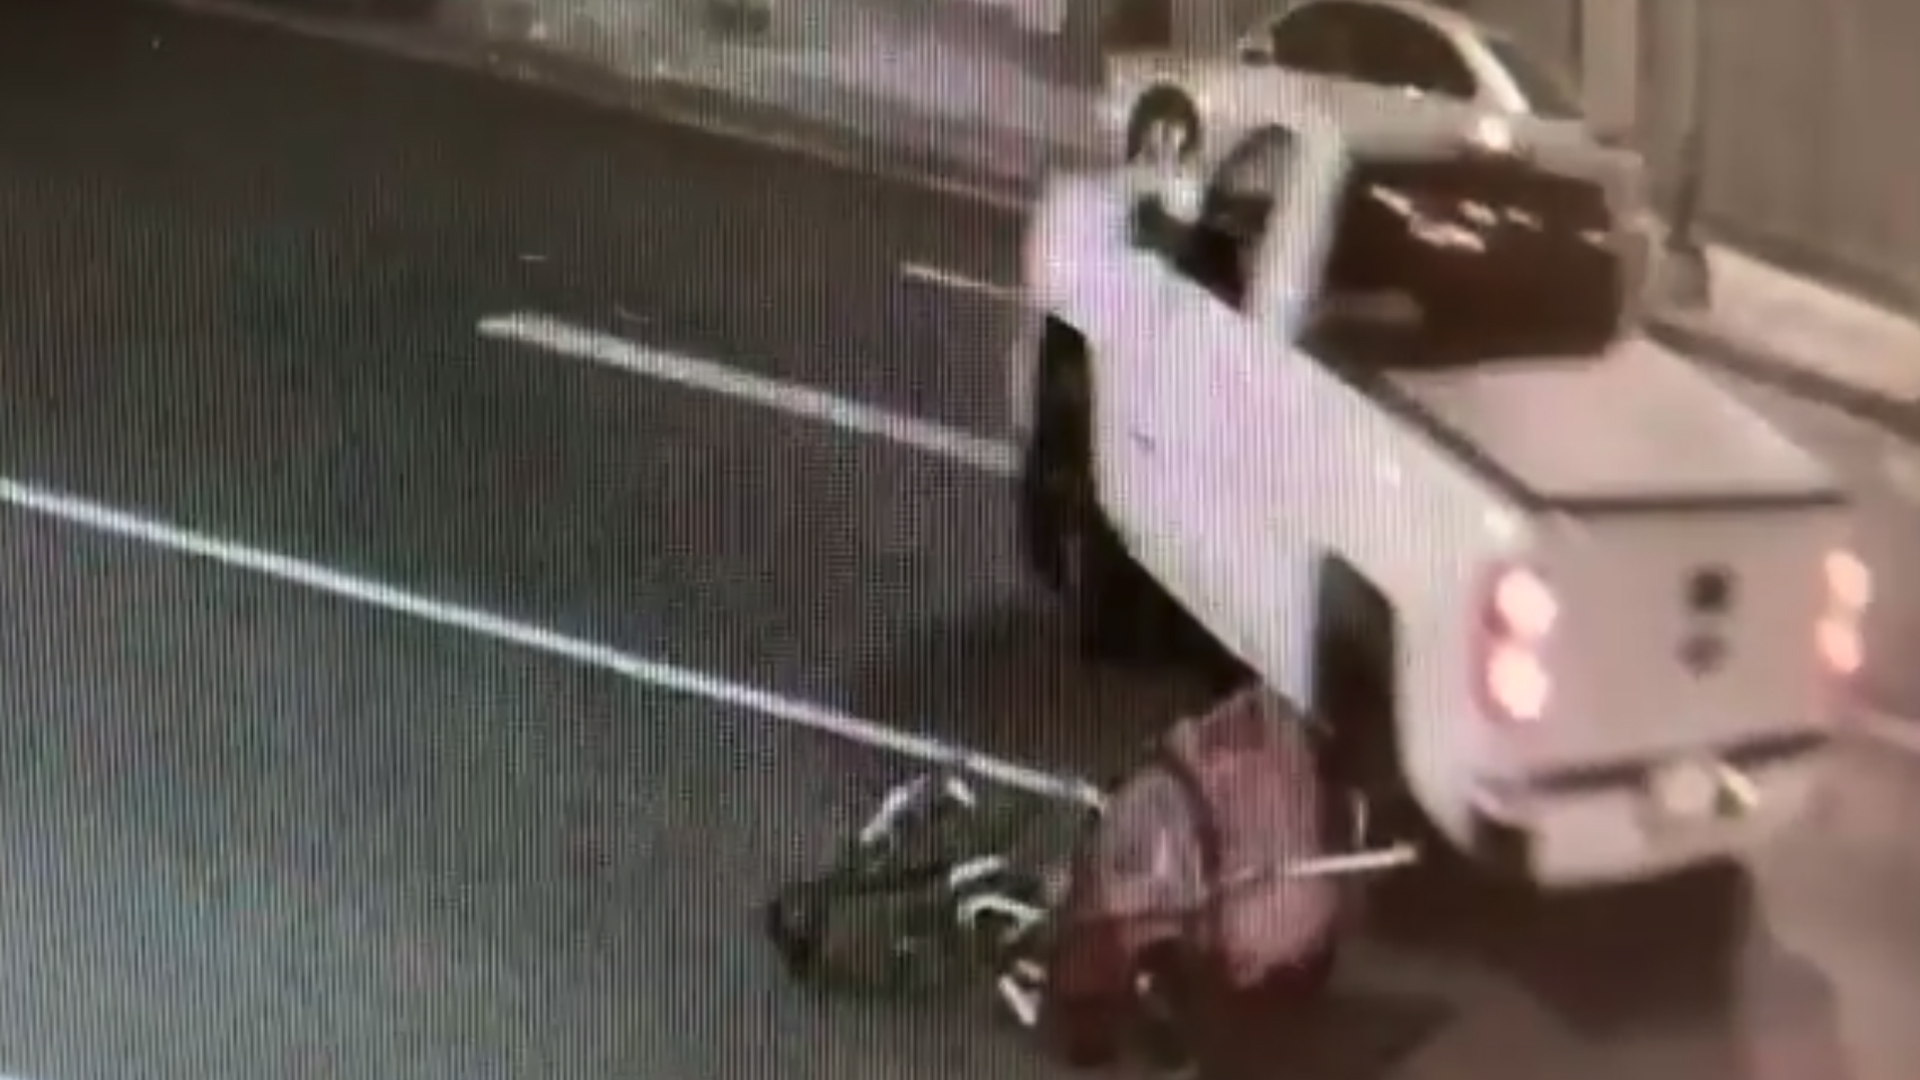 This still from surveillance video released by LAPD on Aug. 26, 2019, shows a truck flee the scene after hitting a man on a bicycle, which is seen near the truck's tire. (Credit: KTLA)